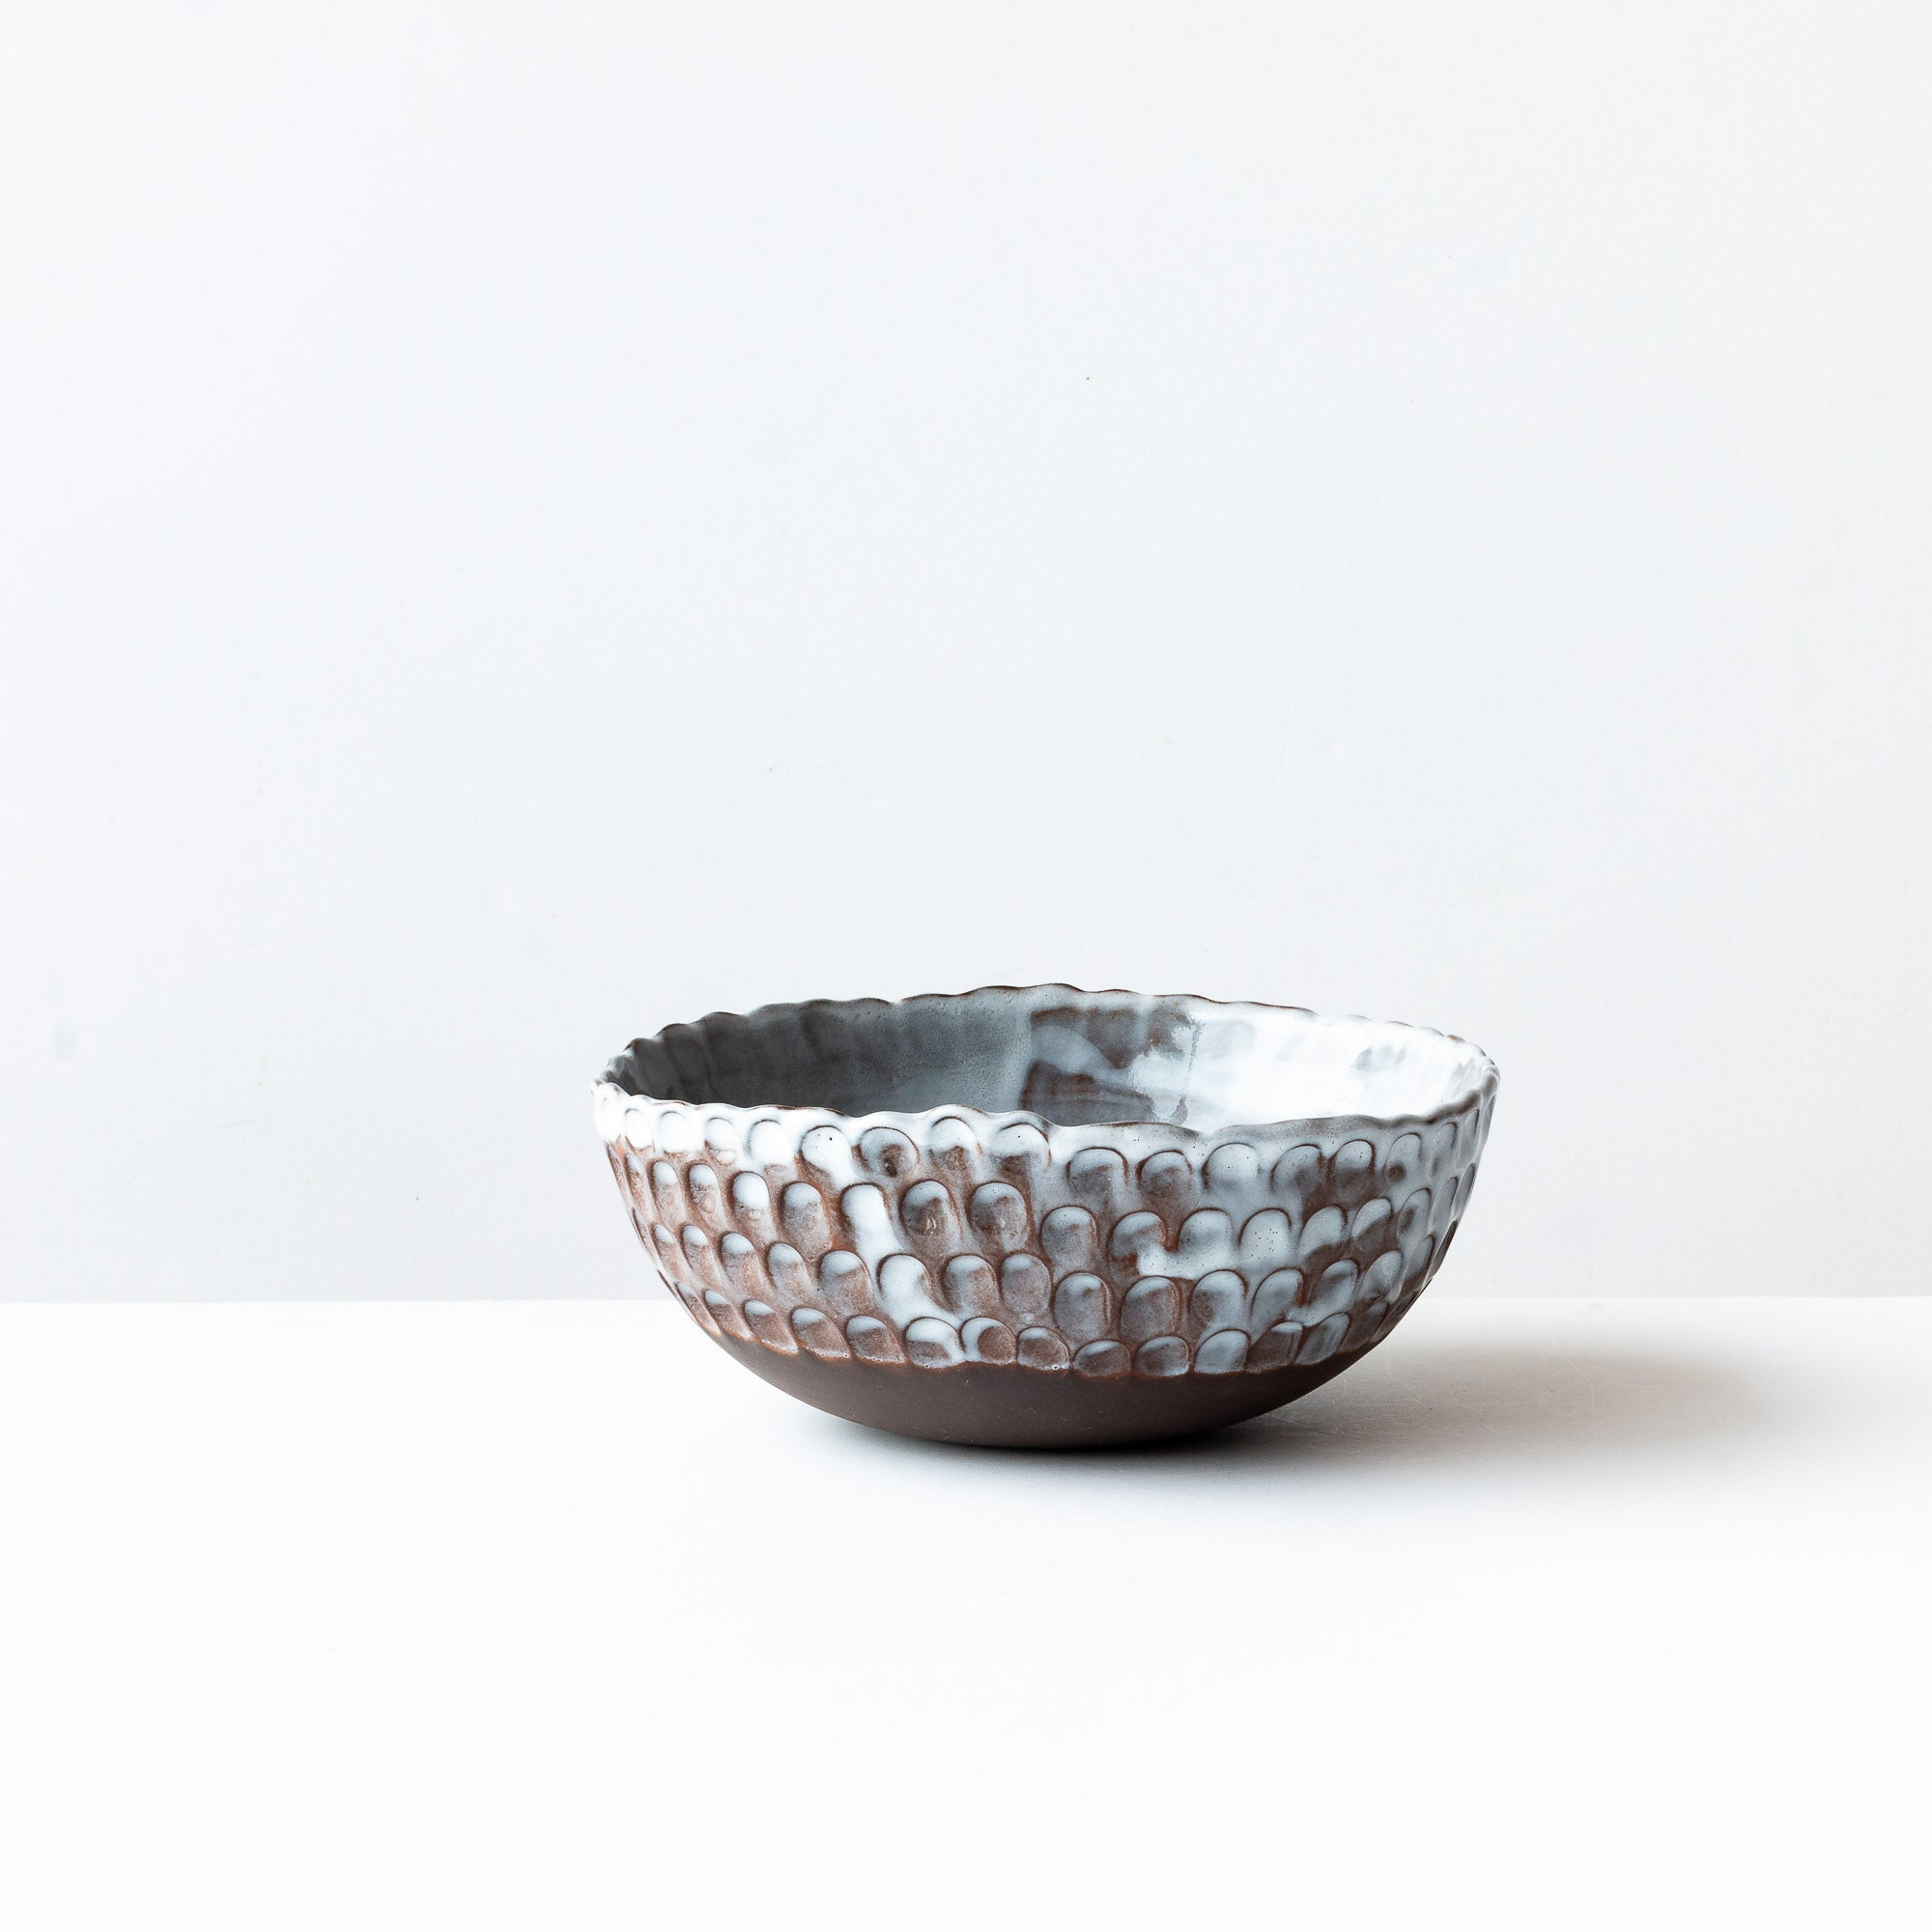 Medium Handmade Stoneware Pinched Bowl  - Sold by Chic & Basta